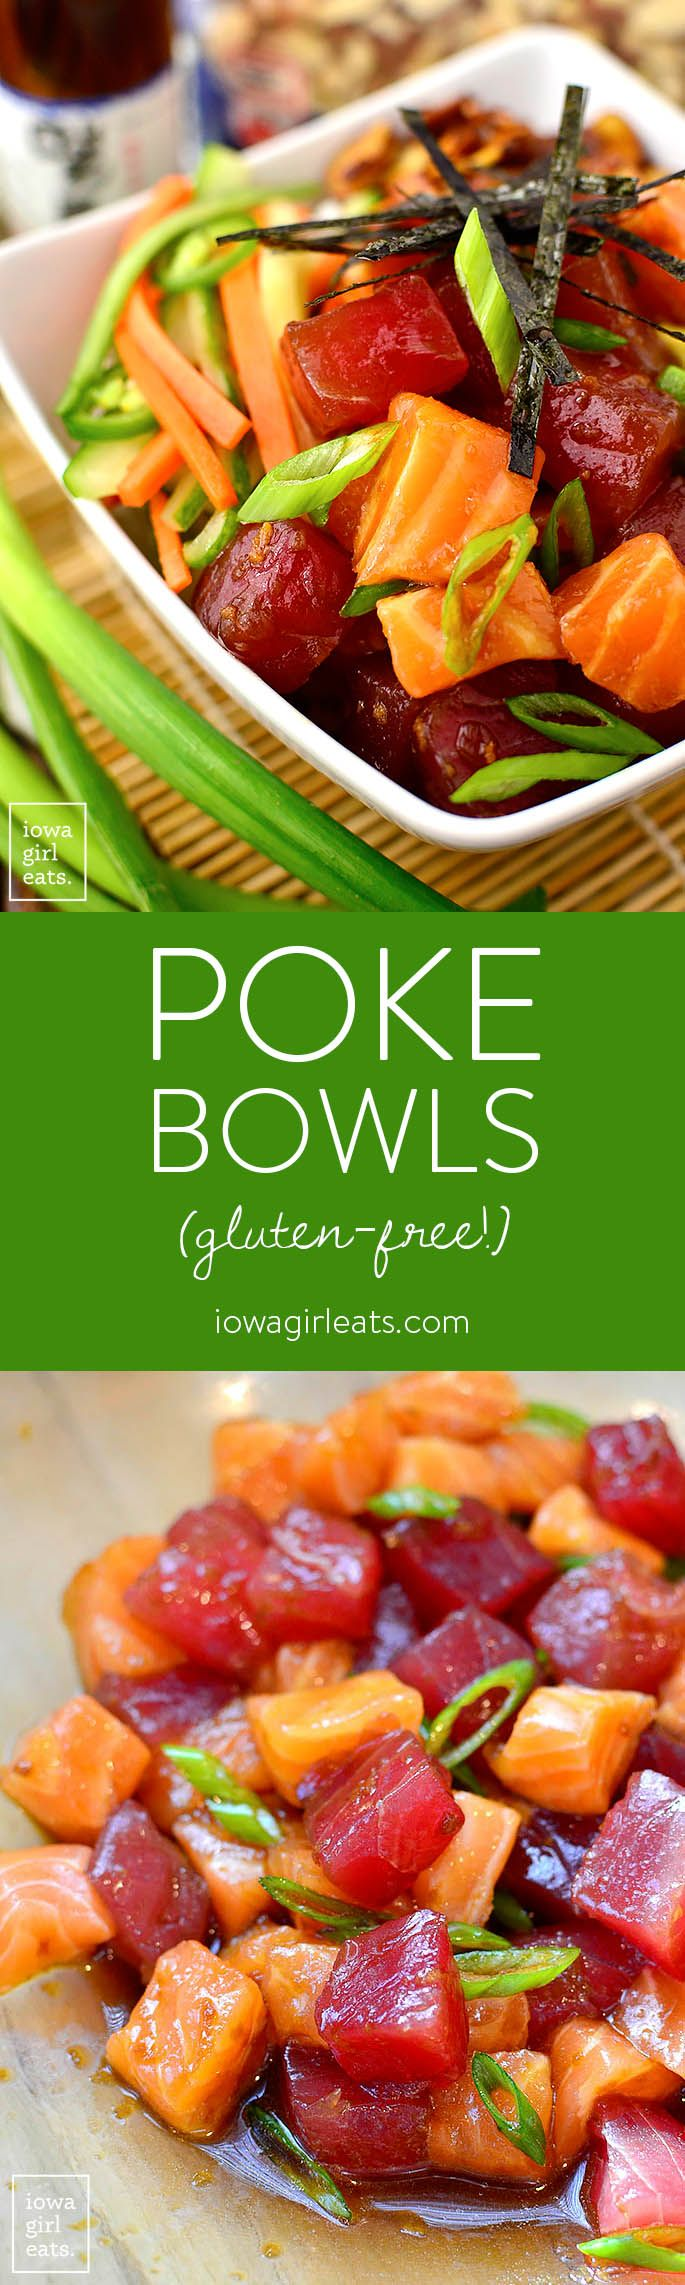 Get a taste of Hawaii at home with Poke Bowls with Sesame-Soy Almonds! These gluten-free, deconstructed sushi bowls are popular in the islands, but are fun and easy to assemble on the mainland! | iowagirleats.com